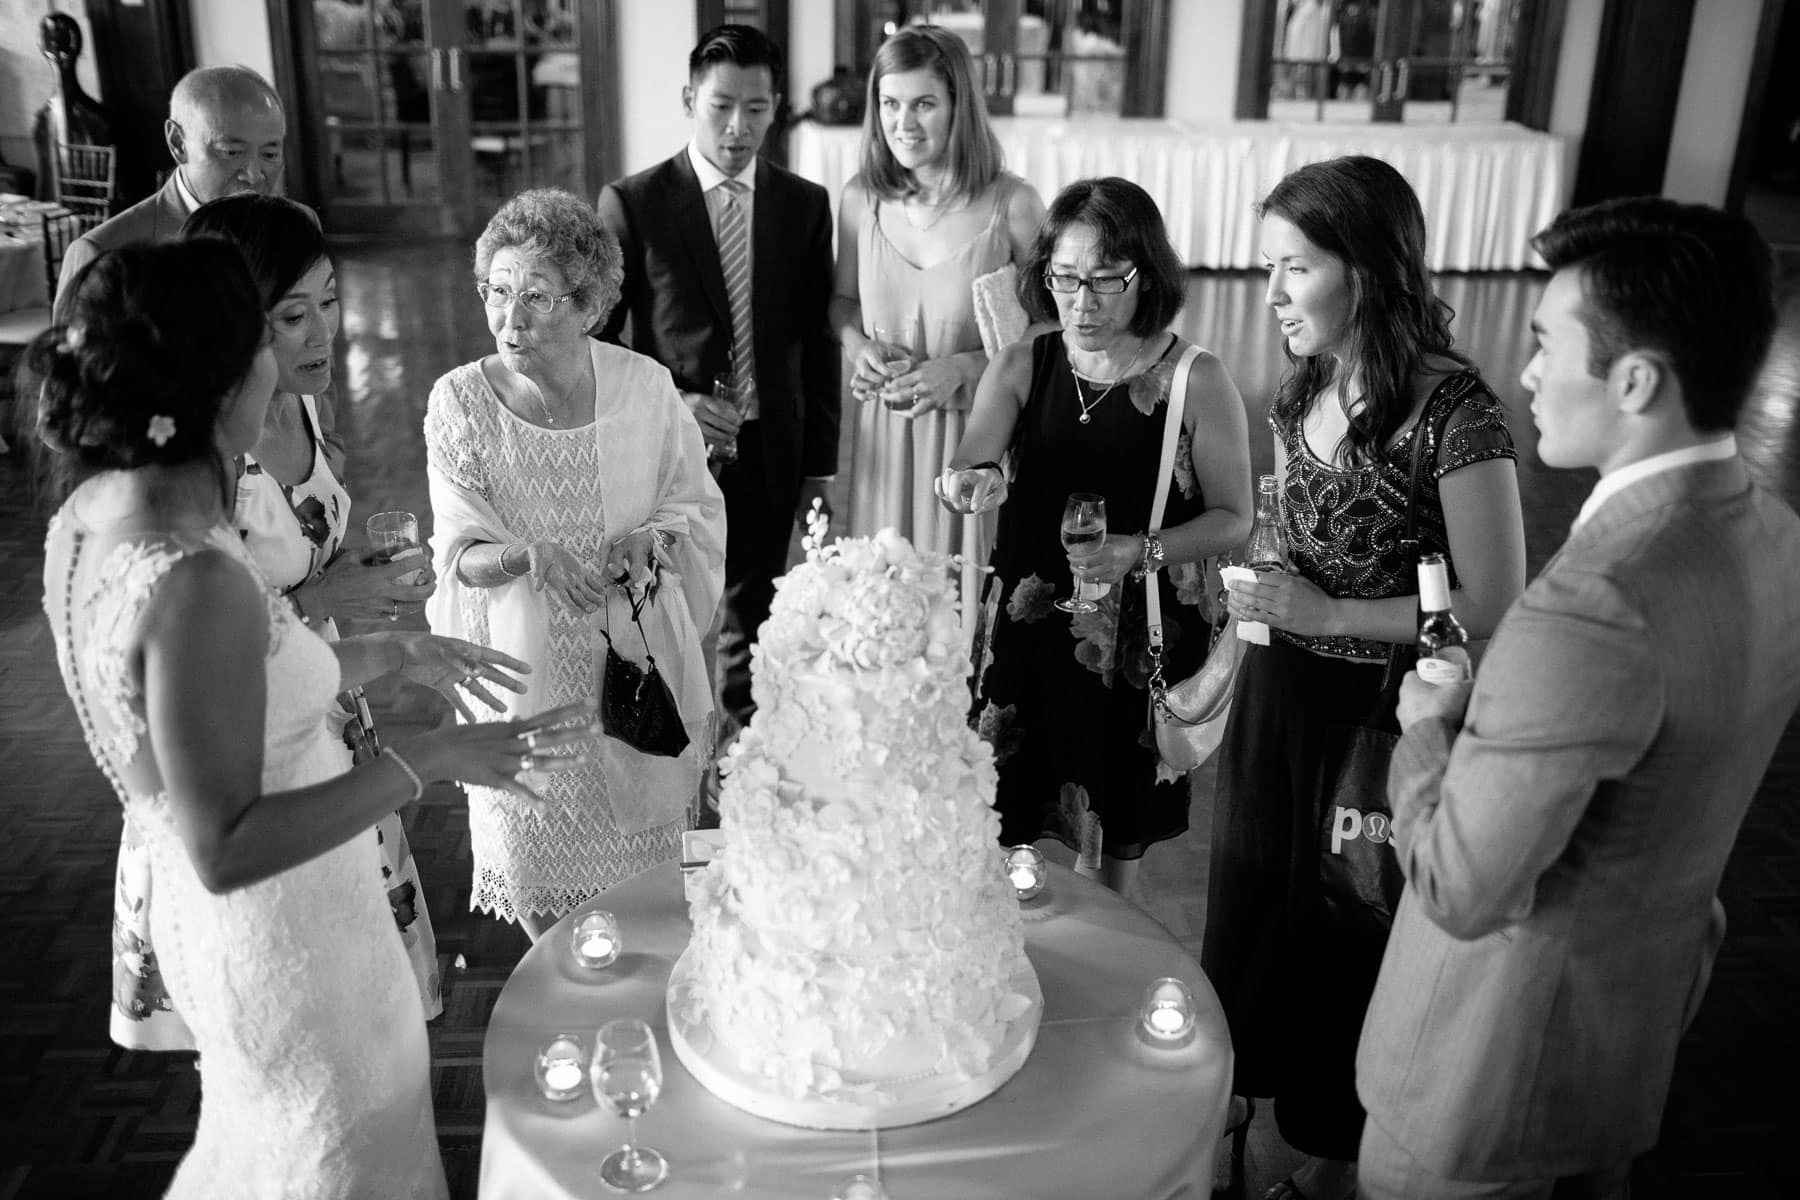 The bride and several of her family members inspect the wedding cake at the Boulevard Club wedding in Toronto.